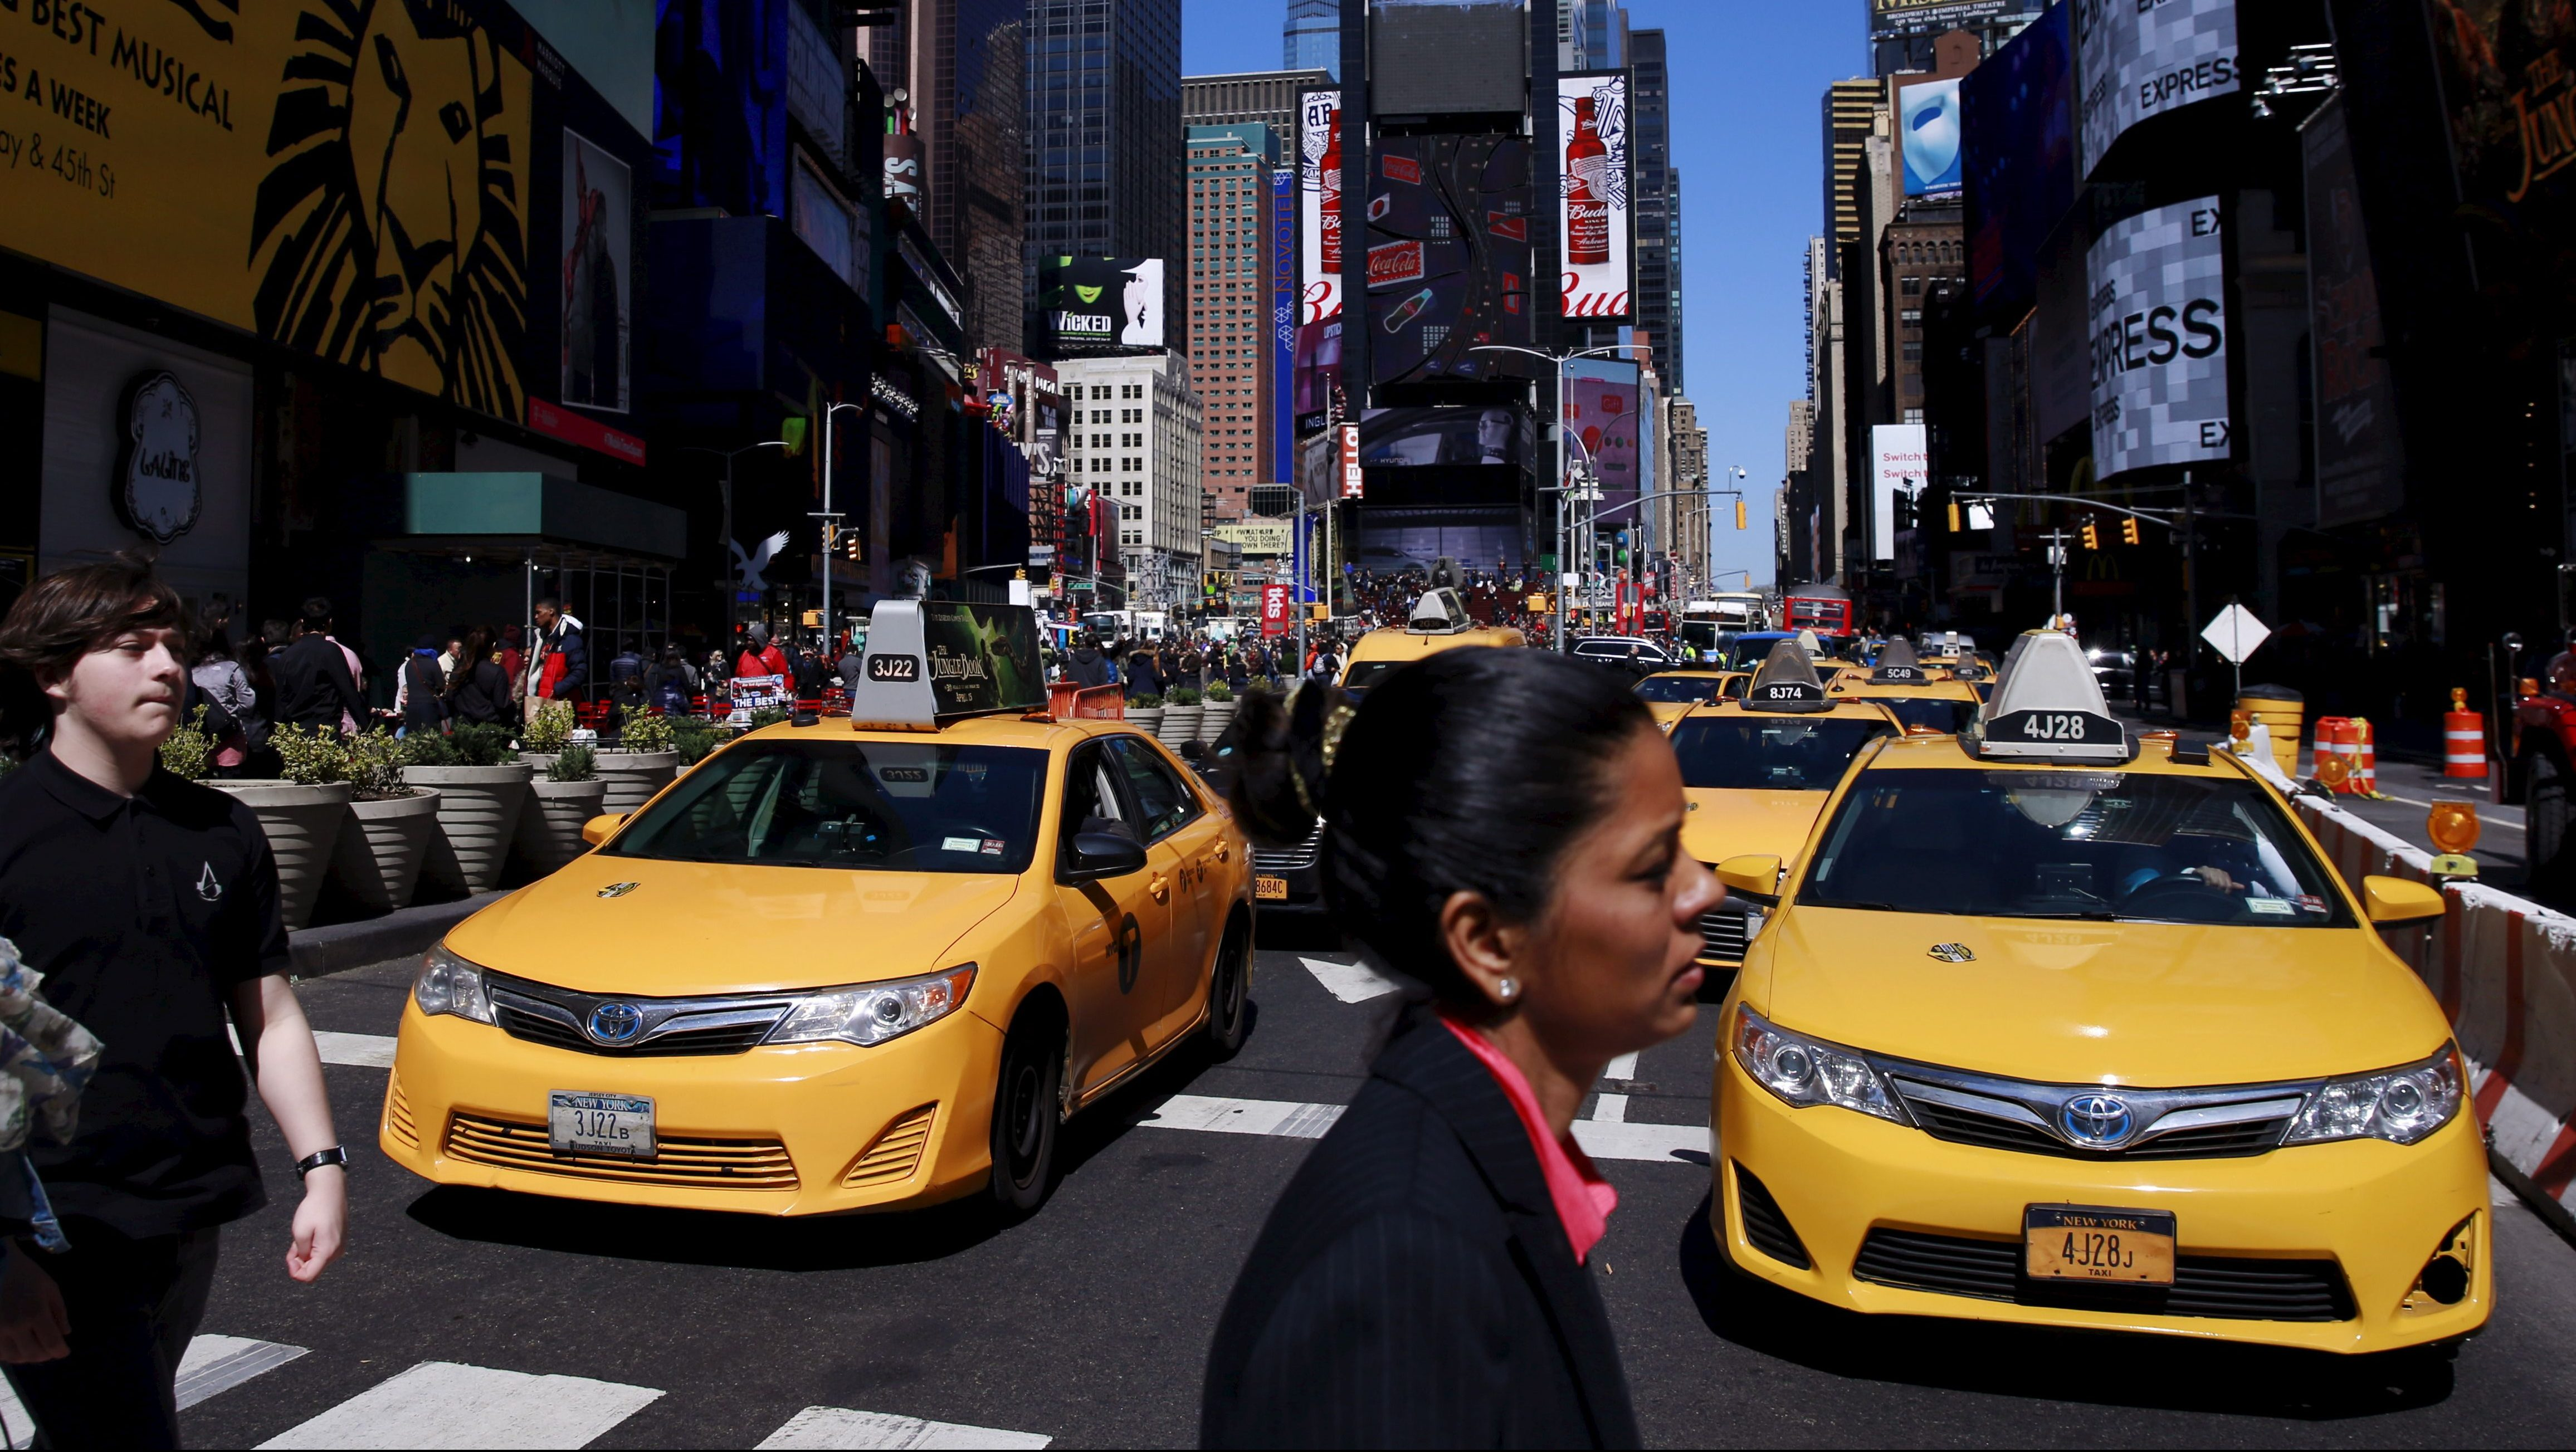 New York City taxi cabs drive through Times Square in New York March 29, 2016.  REUTERS/Lucas Jackson - GF10000364441